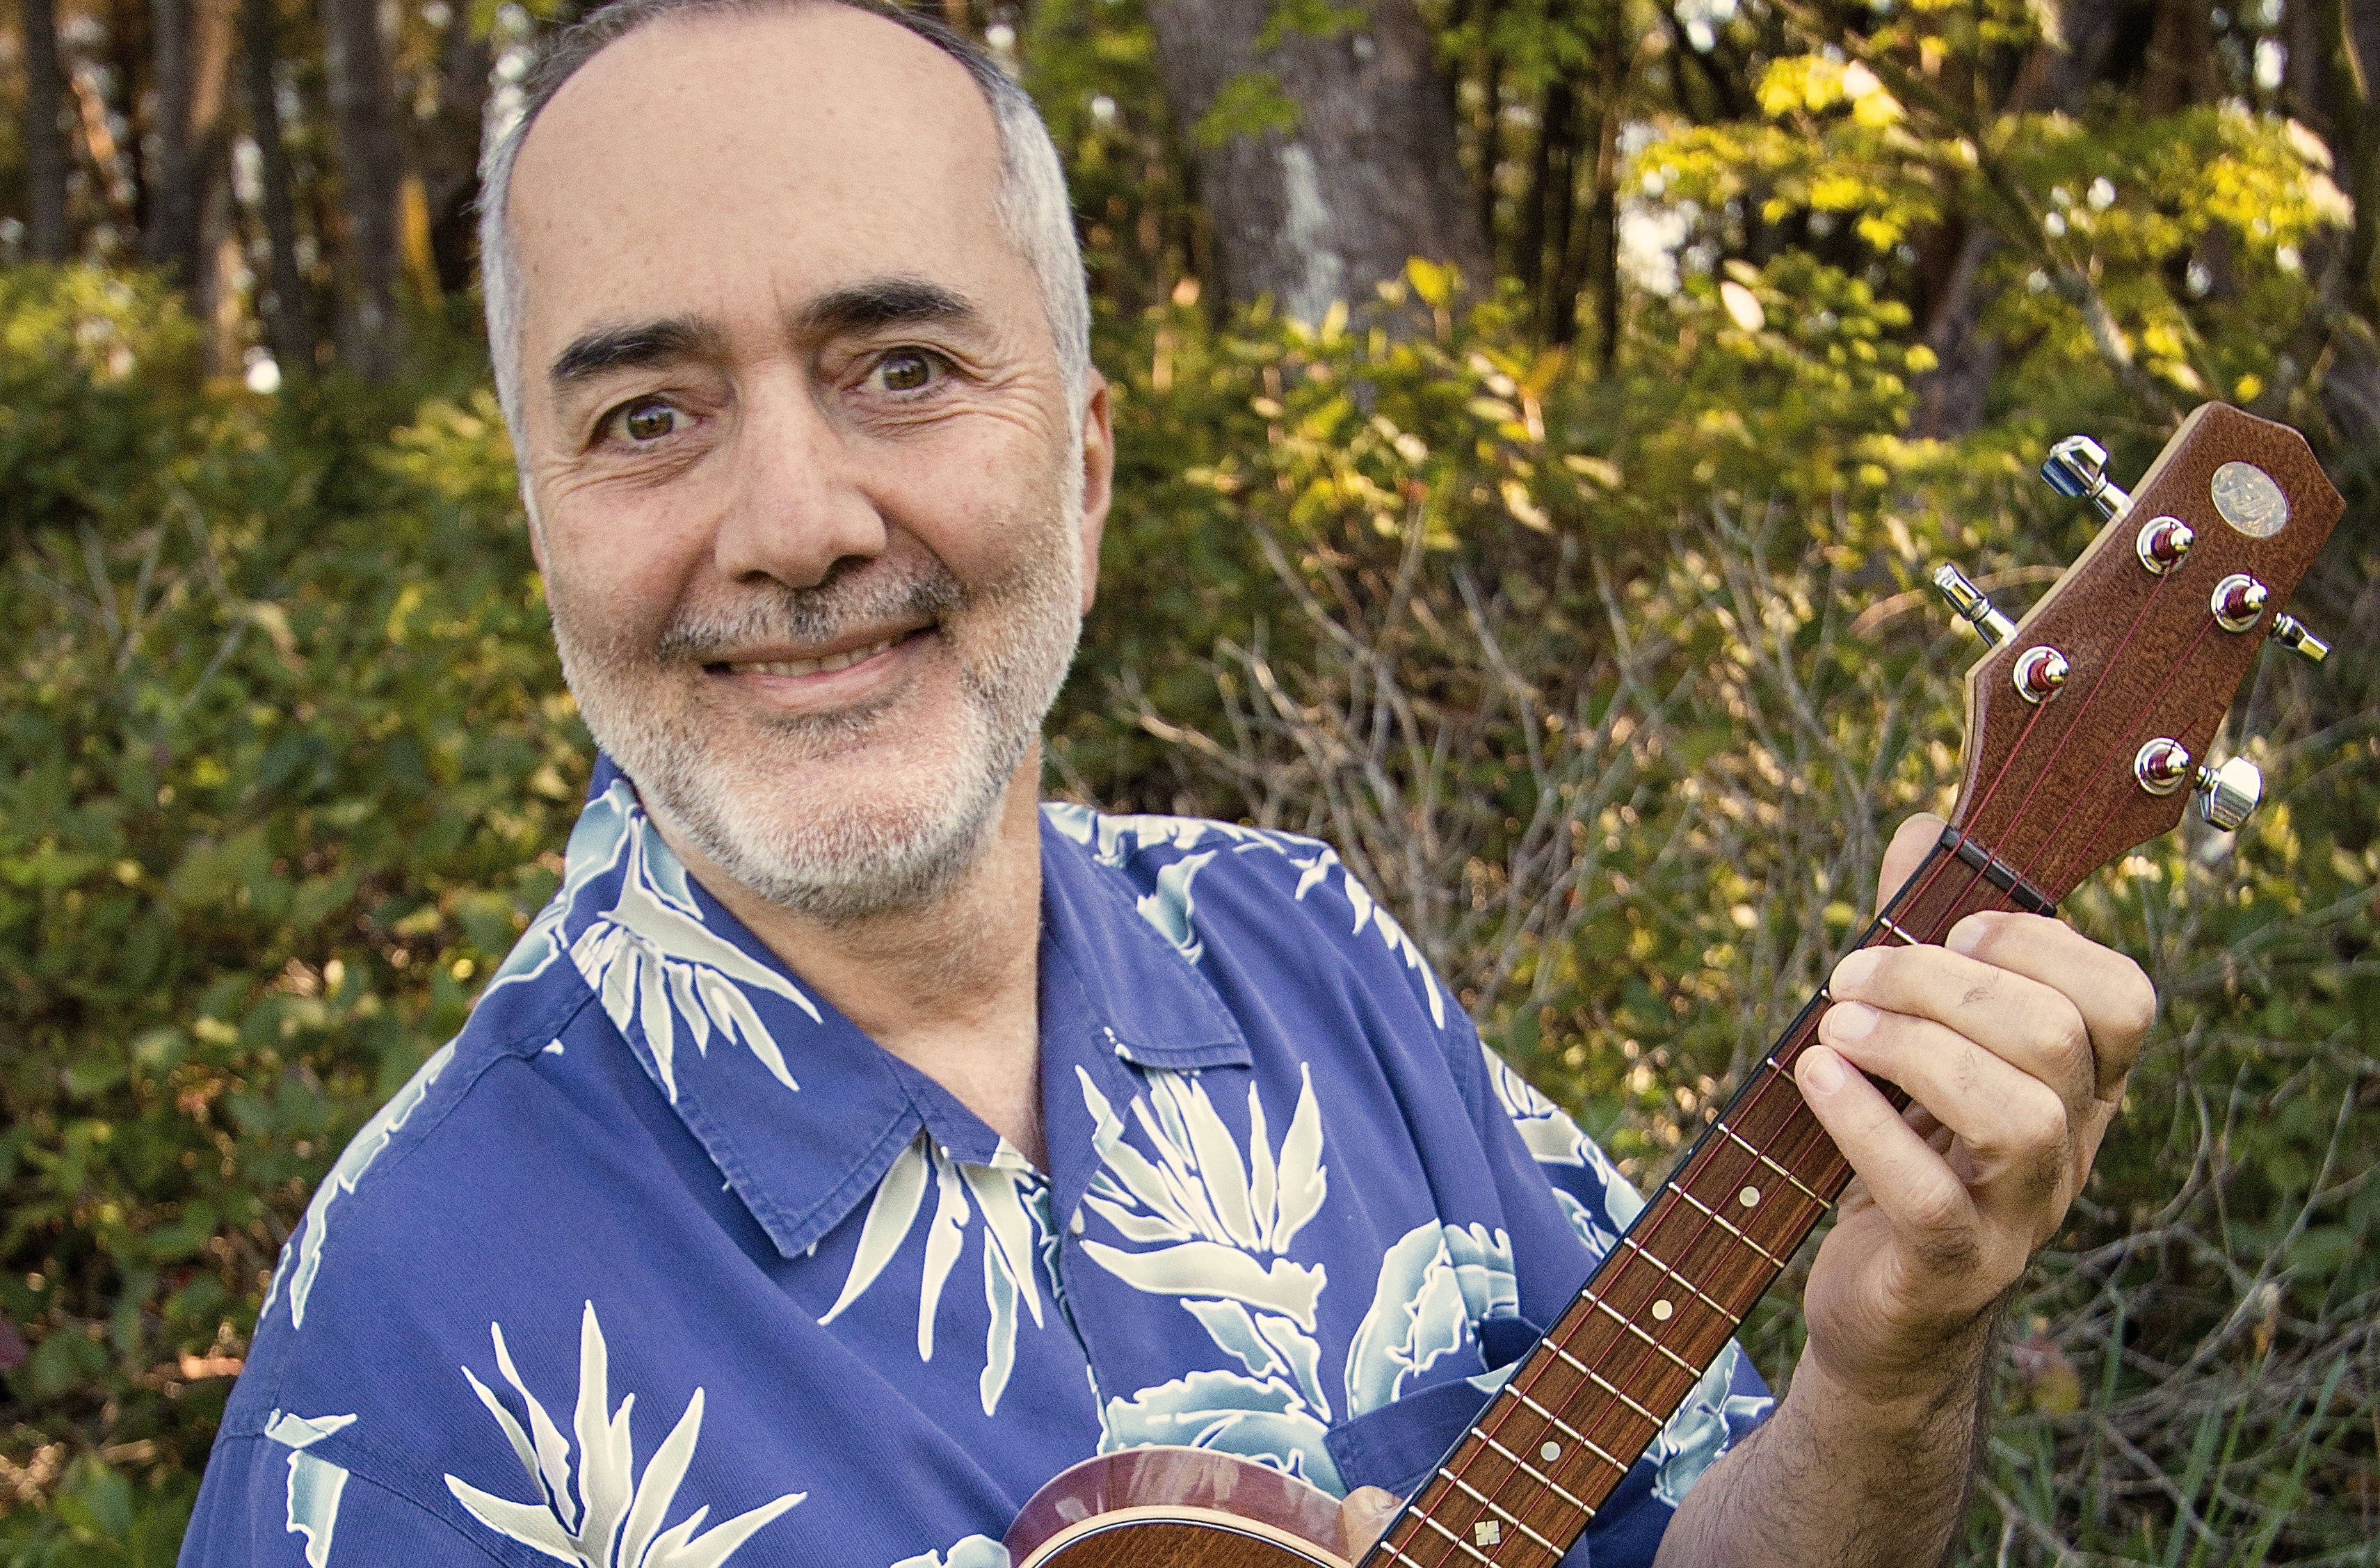 Interview With Beloved Children's Musician, Raffi